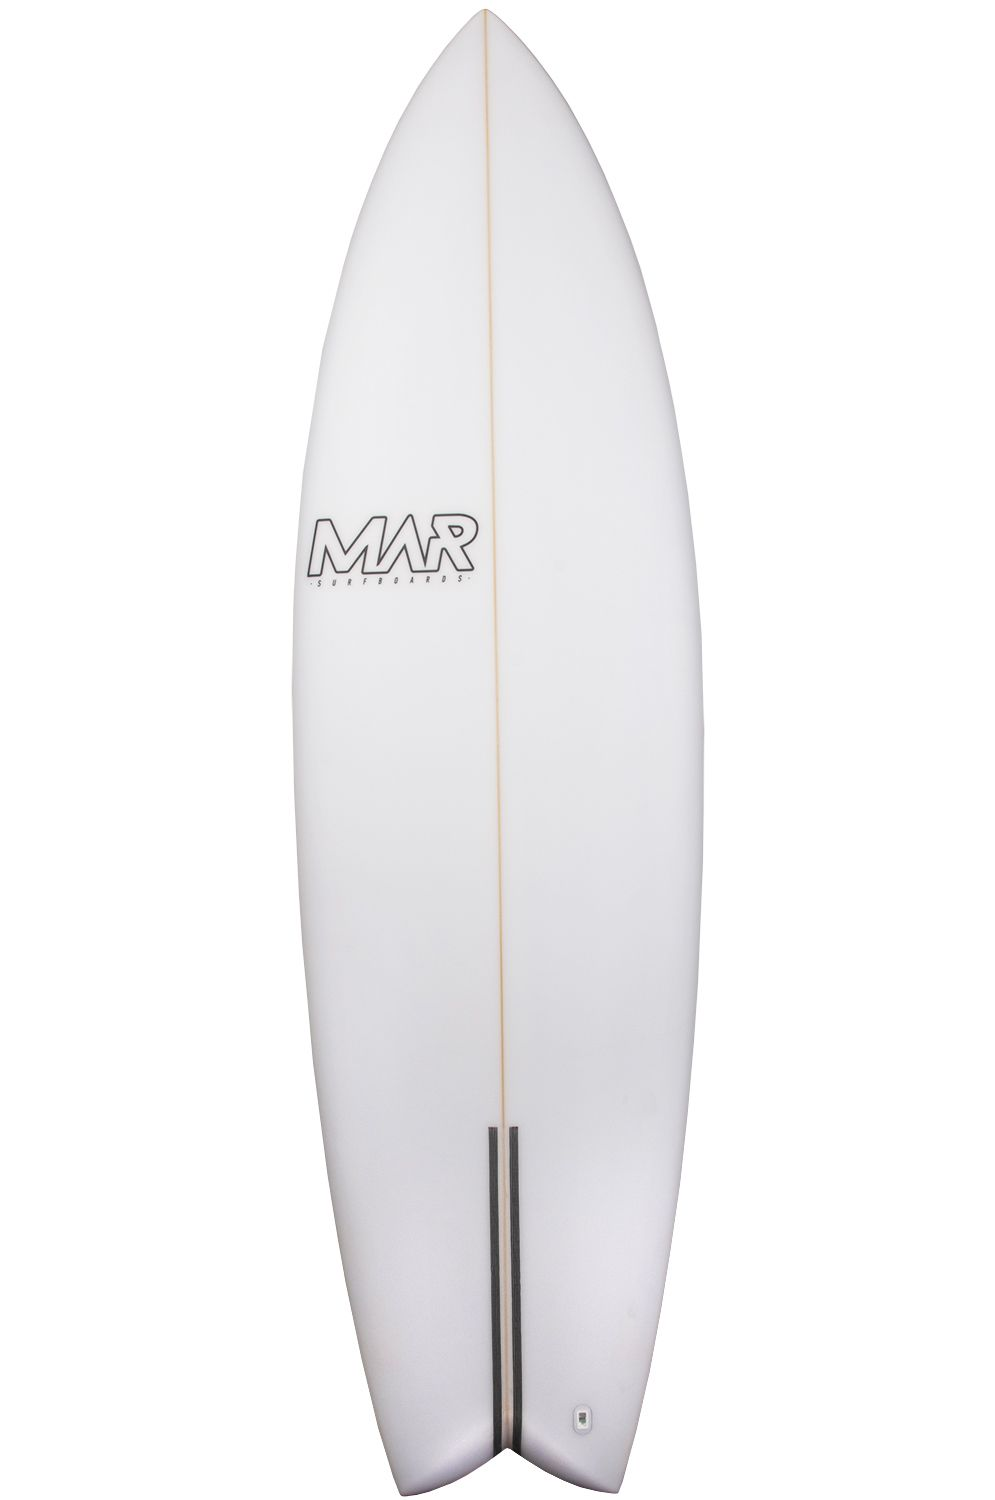 Mar Surf Board 6'4 THE 4 PU Fish Tail - White FCS II Multisystem 6ft4